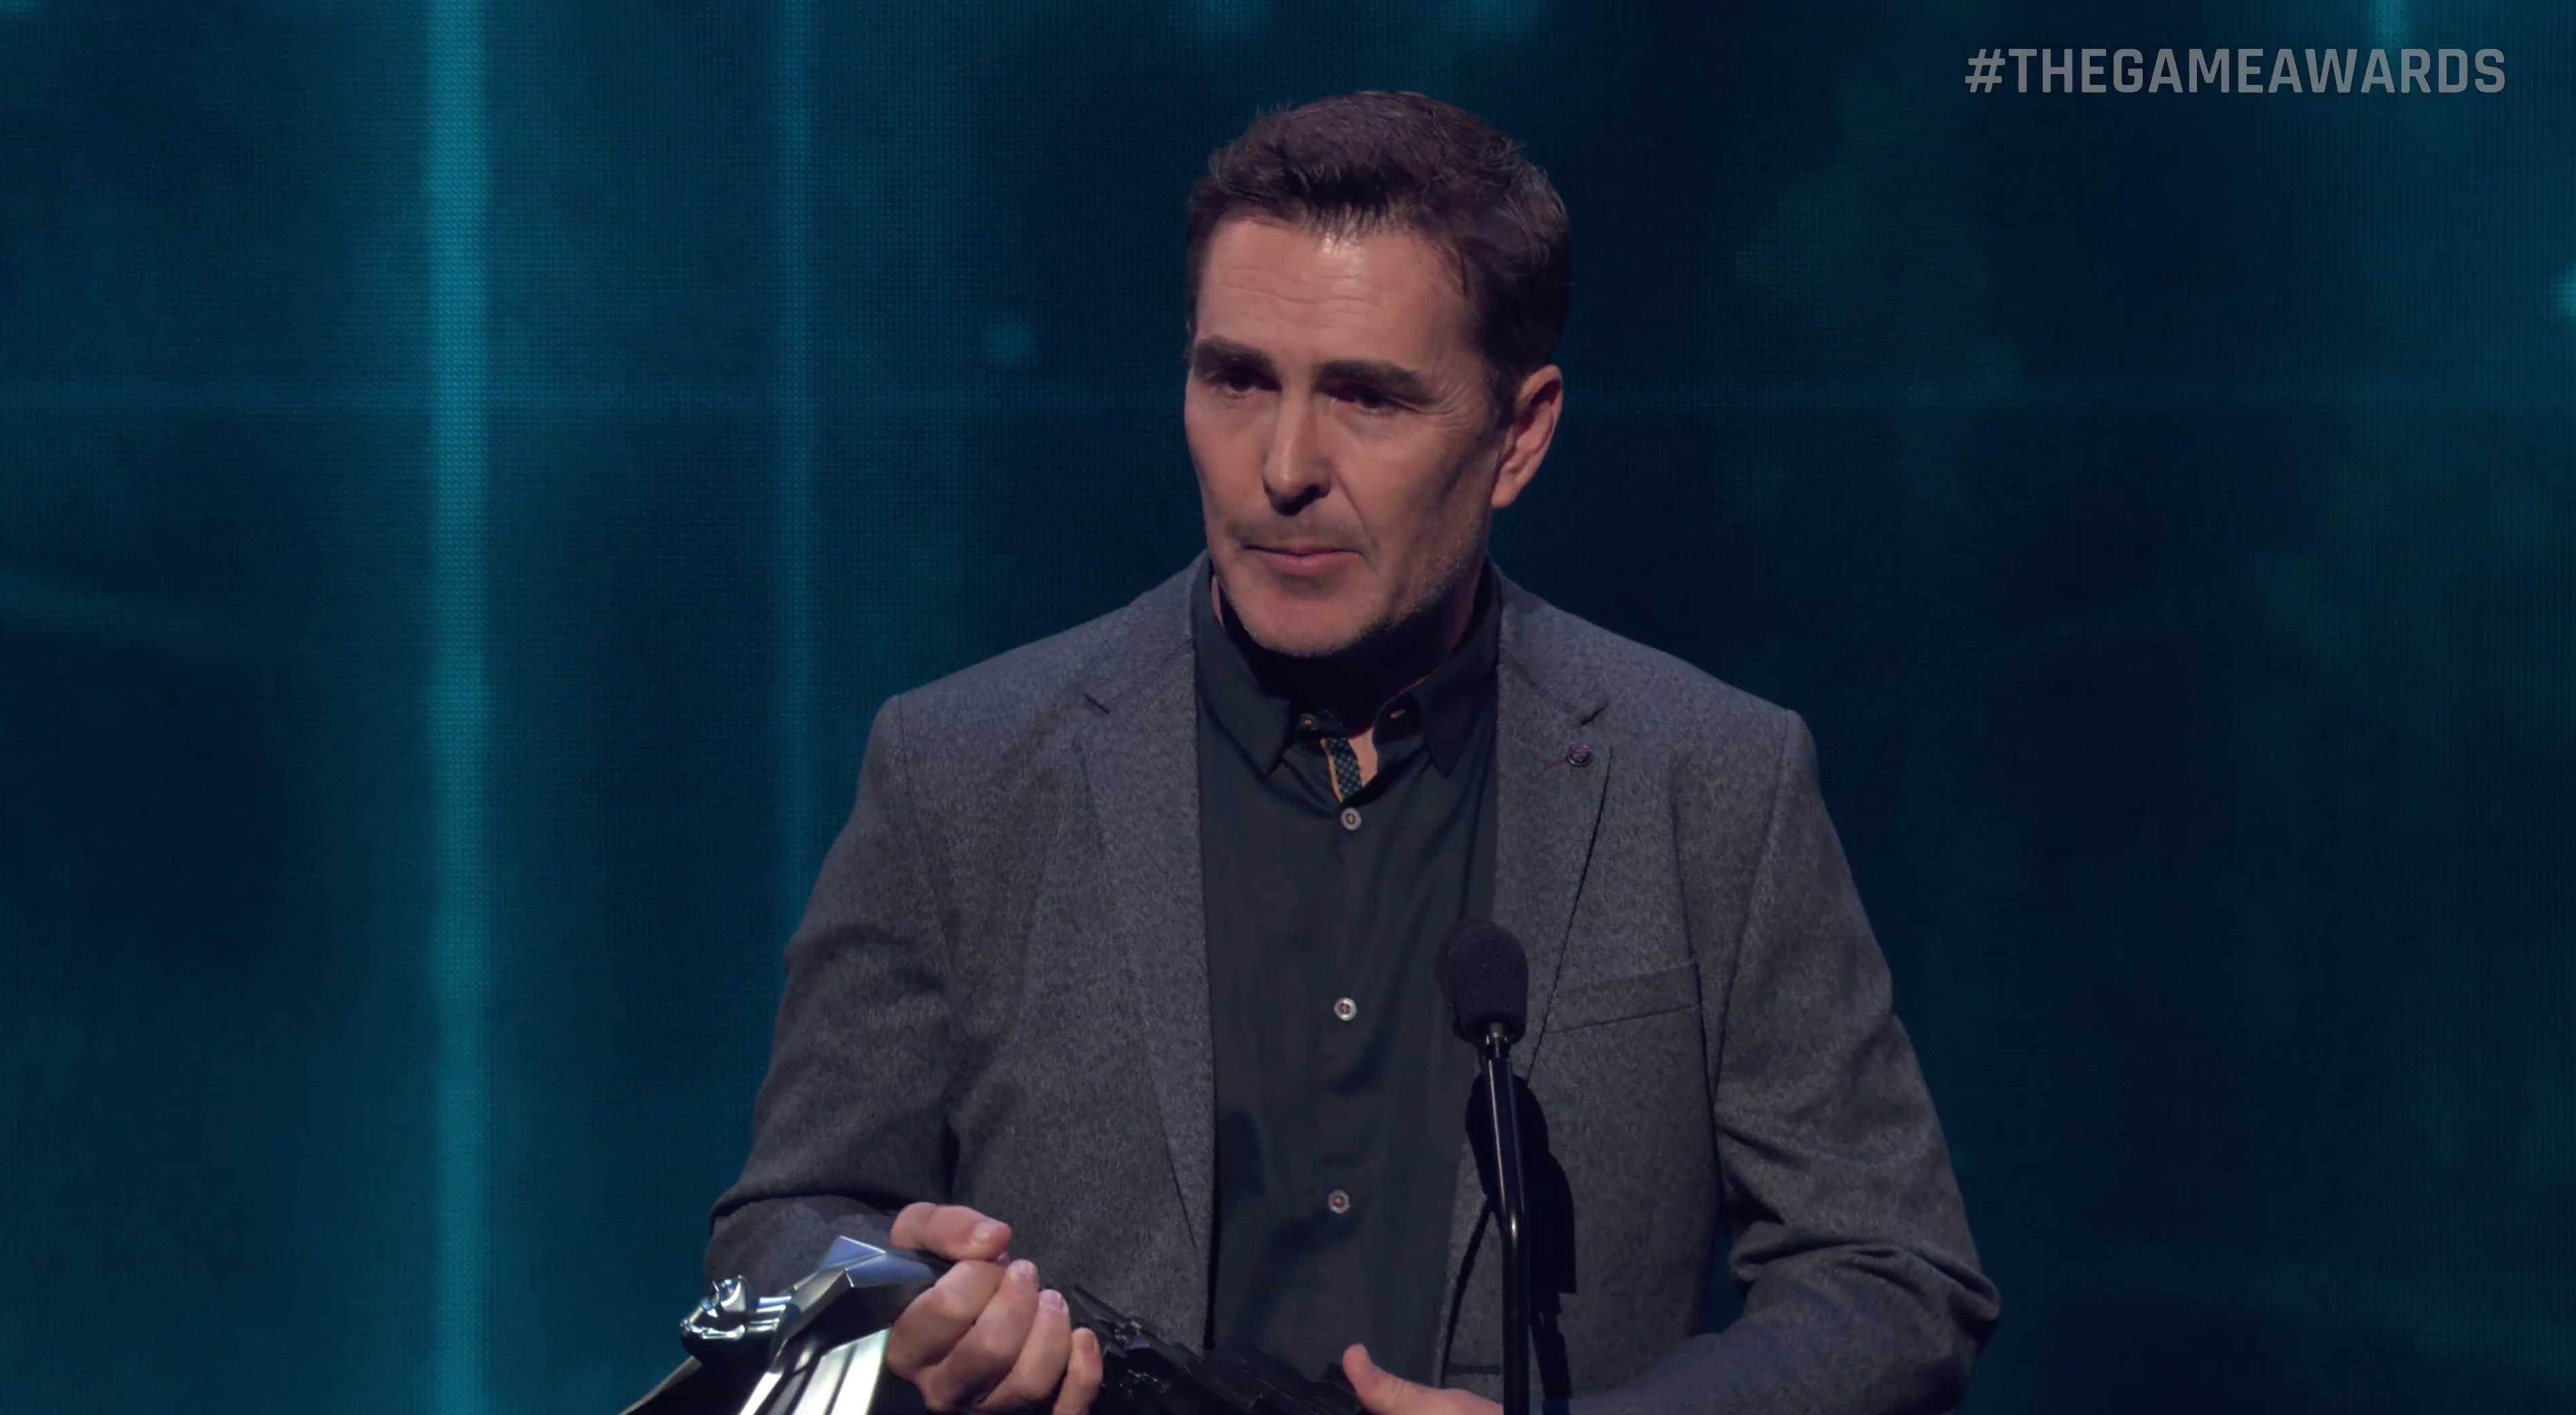 Game Awards 2016: Nolan North Wins Best Performance